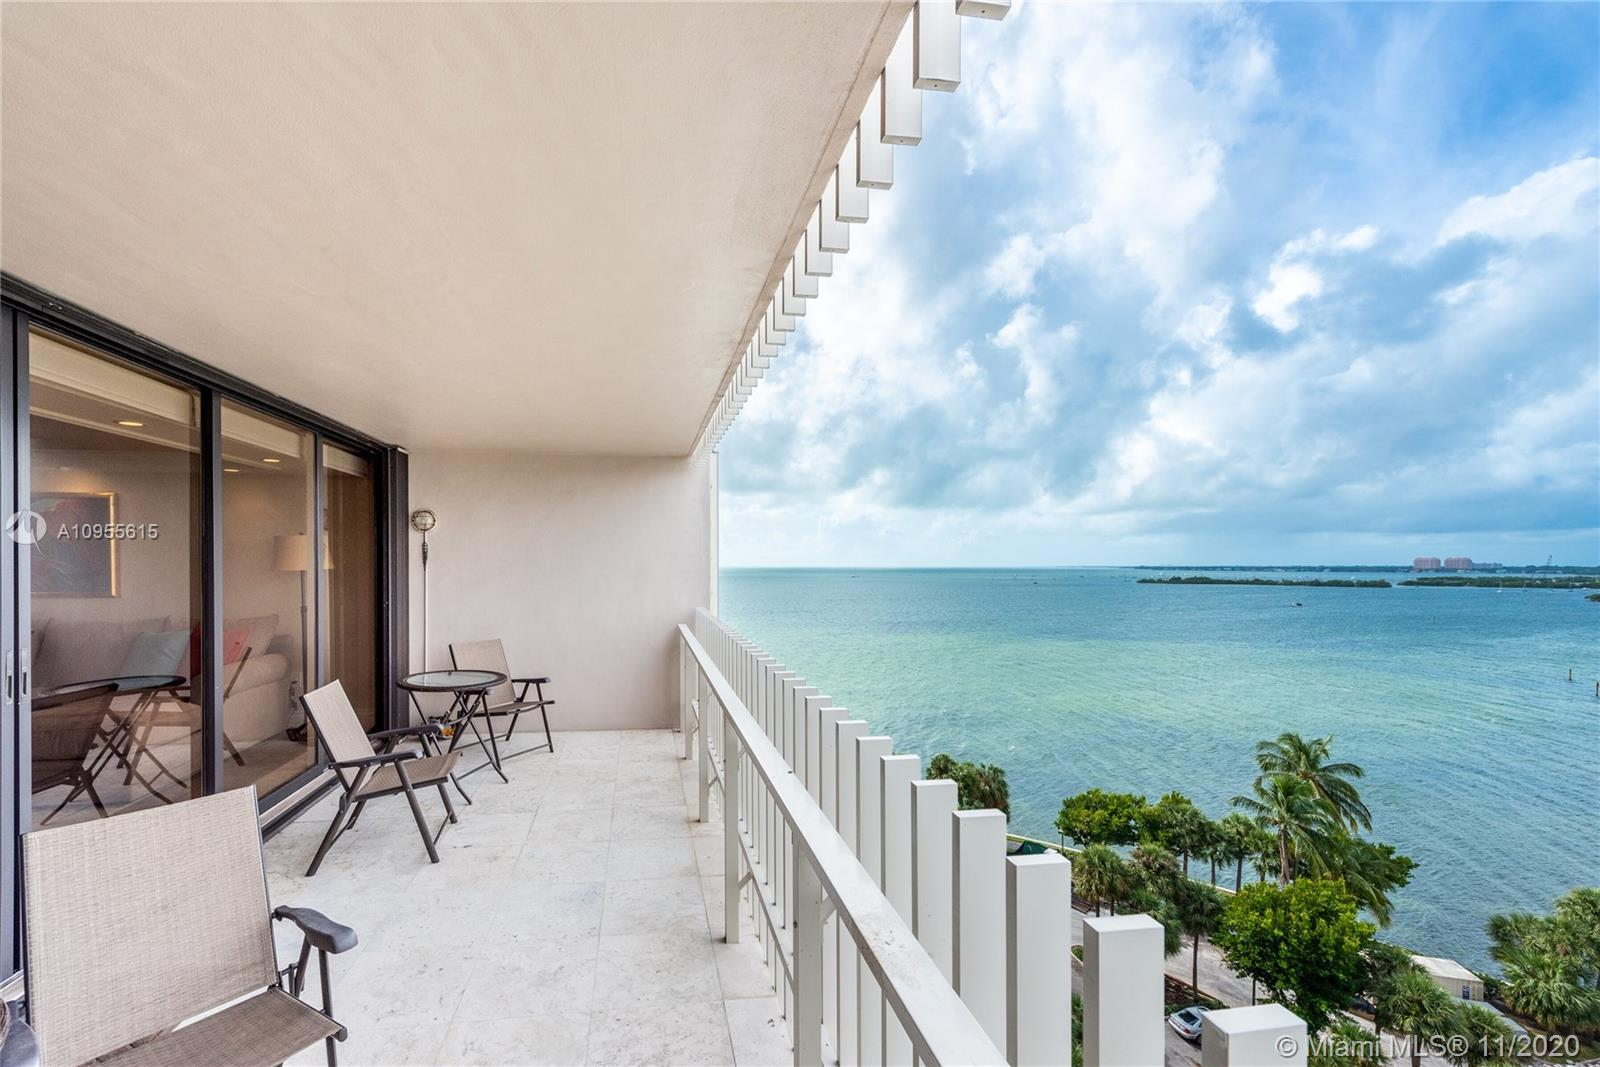 Incredible unobstructed views of South Biscayne Bay and Coconut Grove describes this beautiful 2 bedrooms 2 bath move-in-ready, entertainers delight with bay views from every room. The custom kitchen includes a bar counter open to the living area with granite countertops, GE profile appliances, and lots of cabinetry for storage. Other features include a built-in wet bar with wine cooler, new bathrooms, electric shades, custom lighting, new ac, marble floors, and spacious closets. Enjoy amazing sunsets on your terrace! Grove Isle is a secure guard gated 20-acre private island in the heart of Miami's Coconut Grove with a marina, pool, beach BBQ, and walking paths.